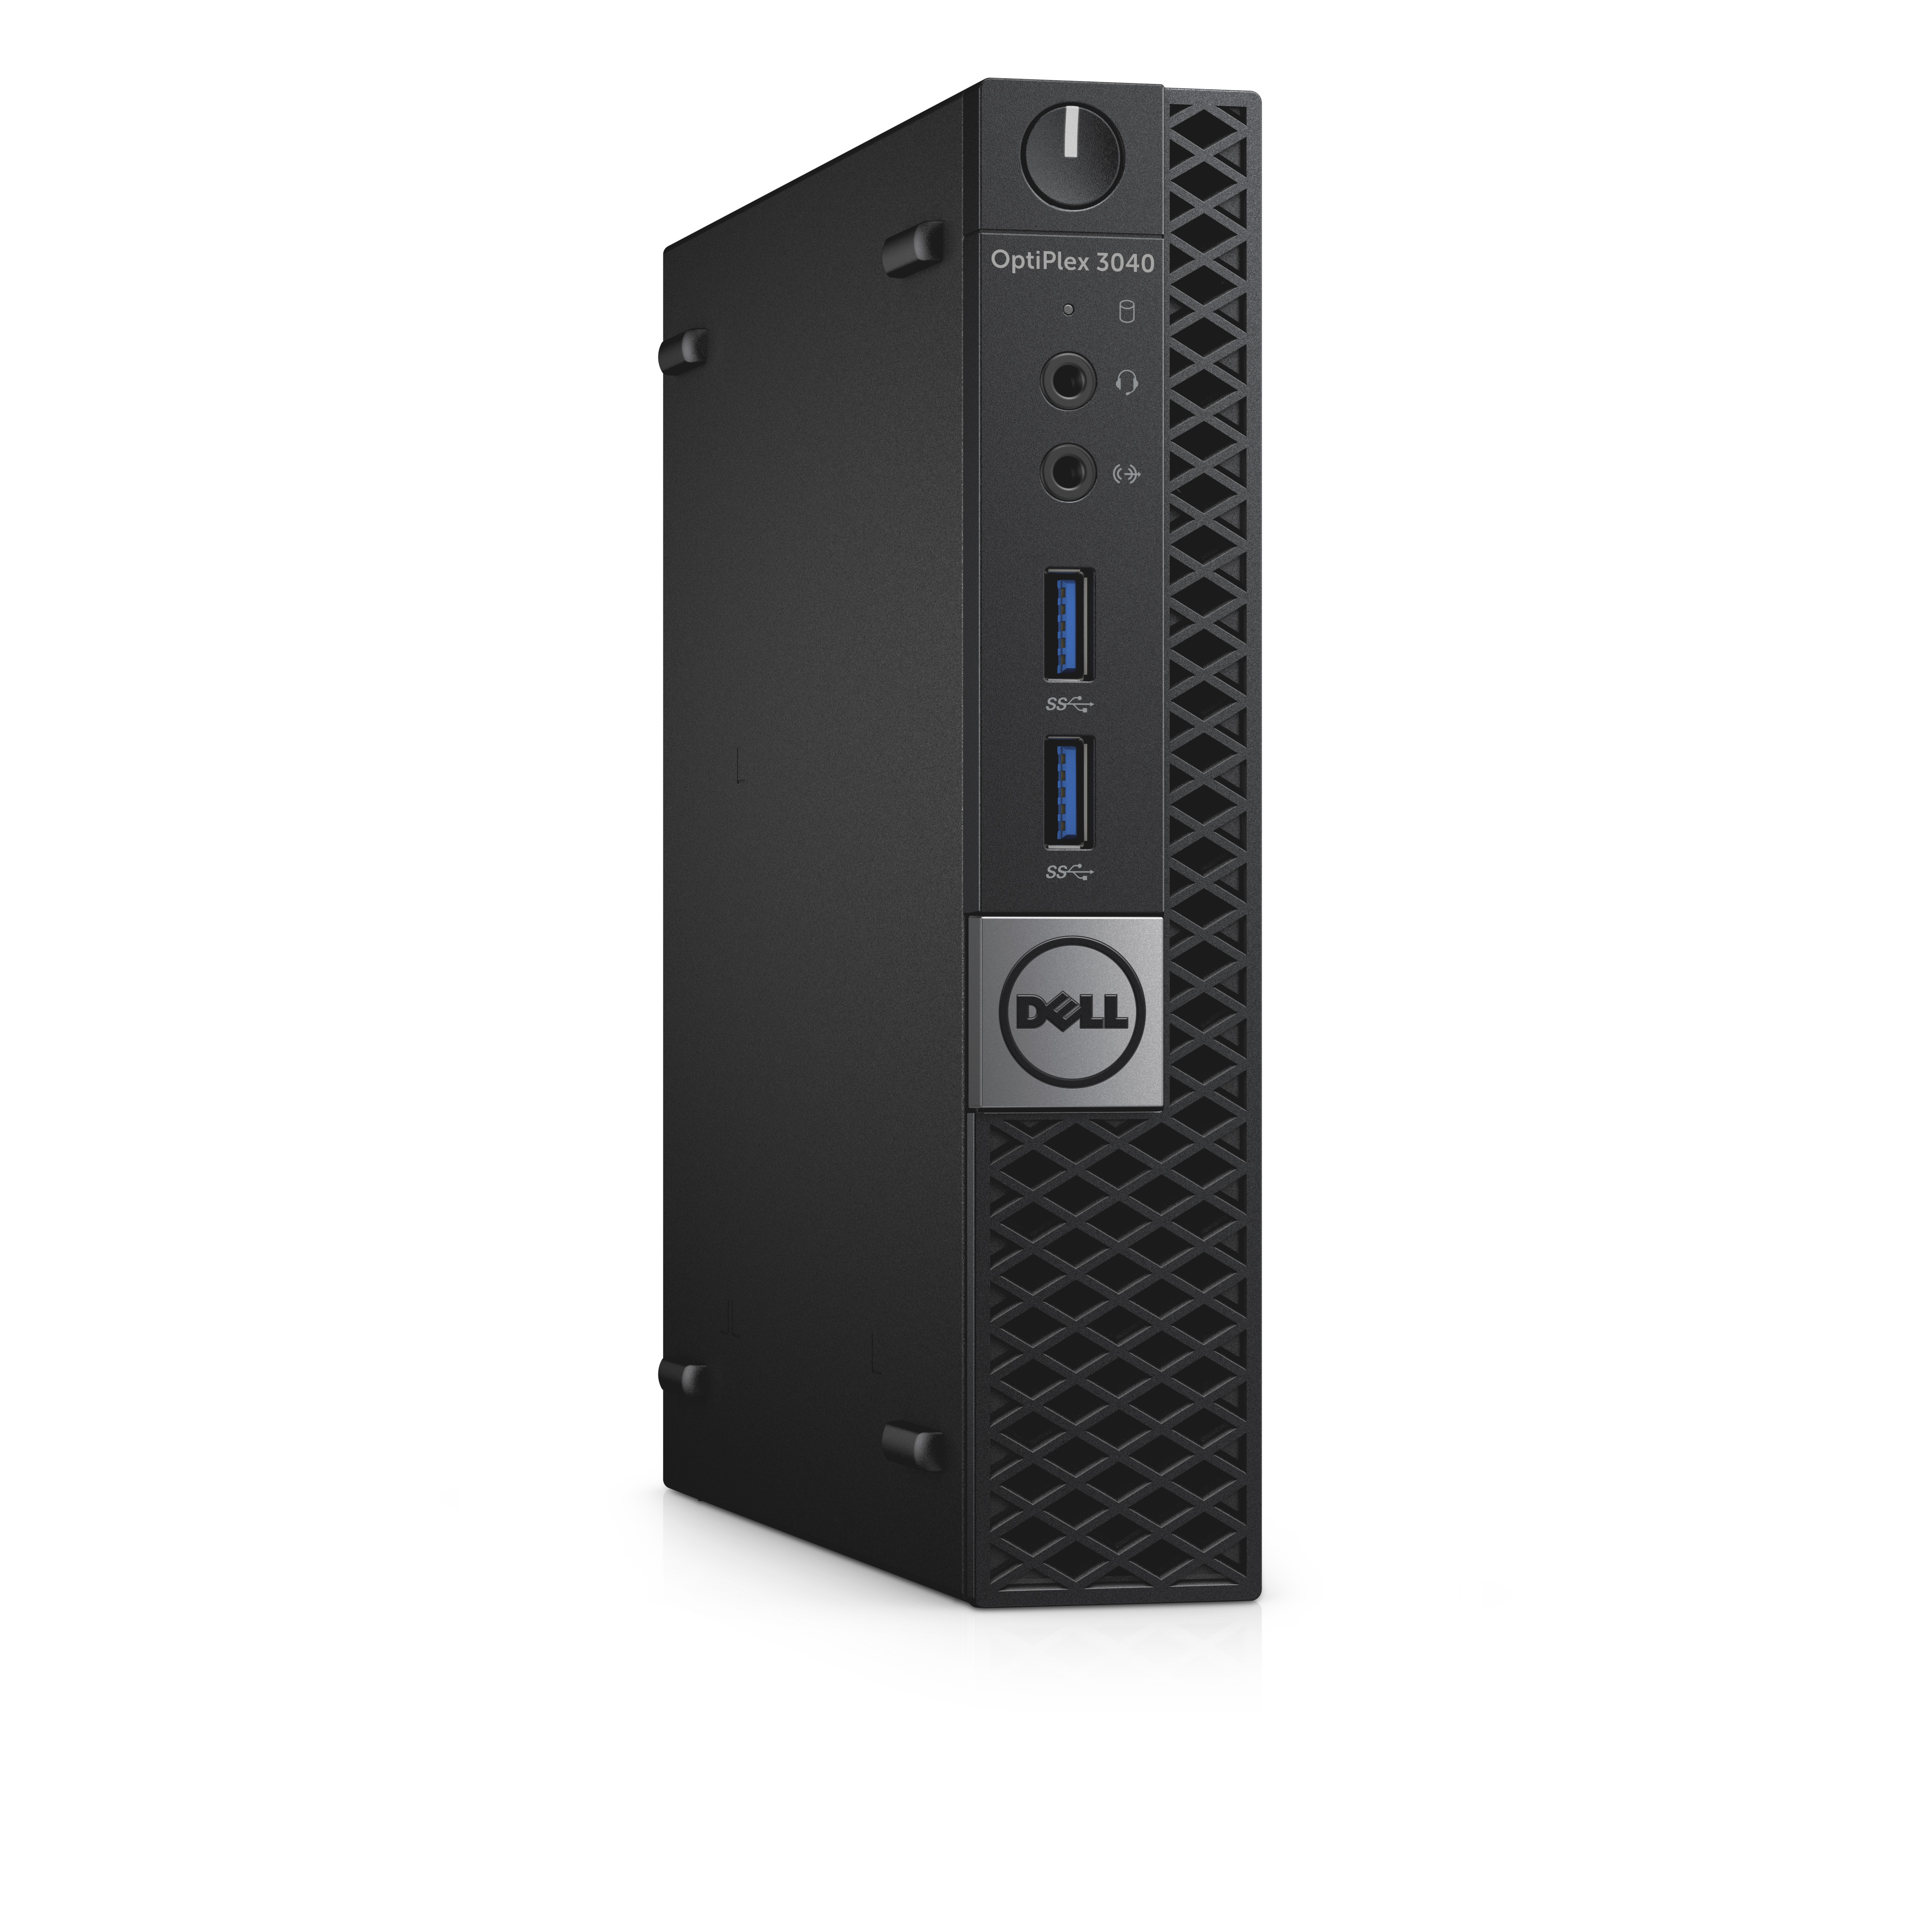 DELL OptiPlex SFF 3046 Core i3-6100/4GB/500GB/Intel HD/Win 10 Pro 64bi